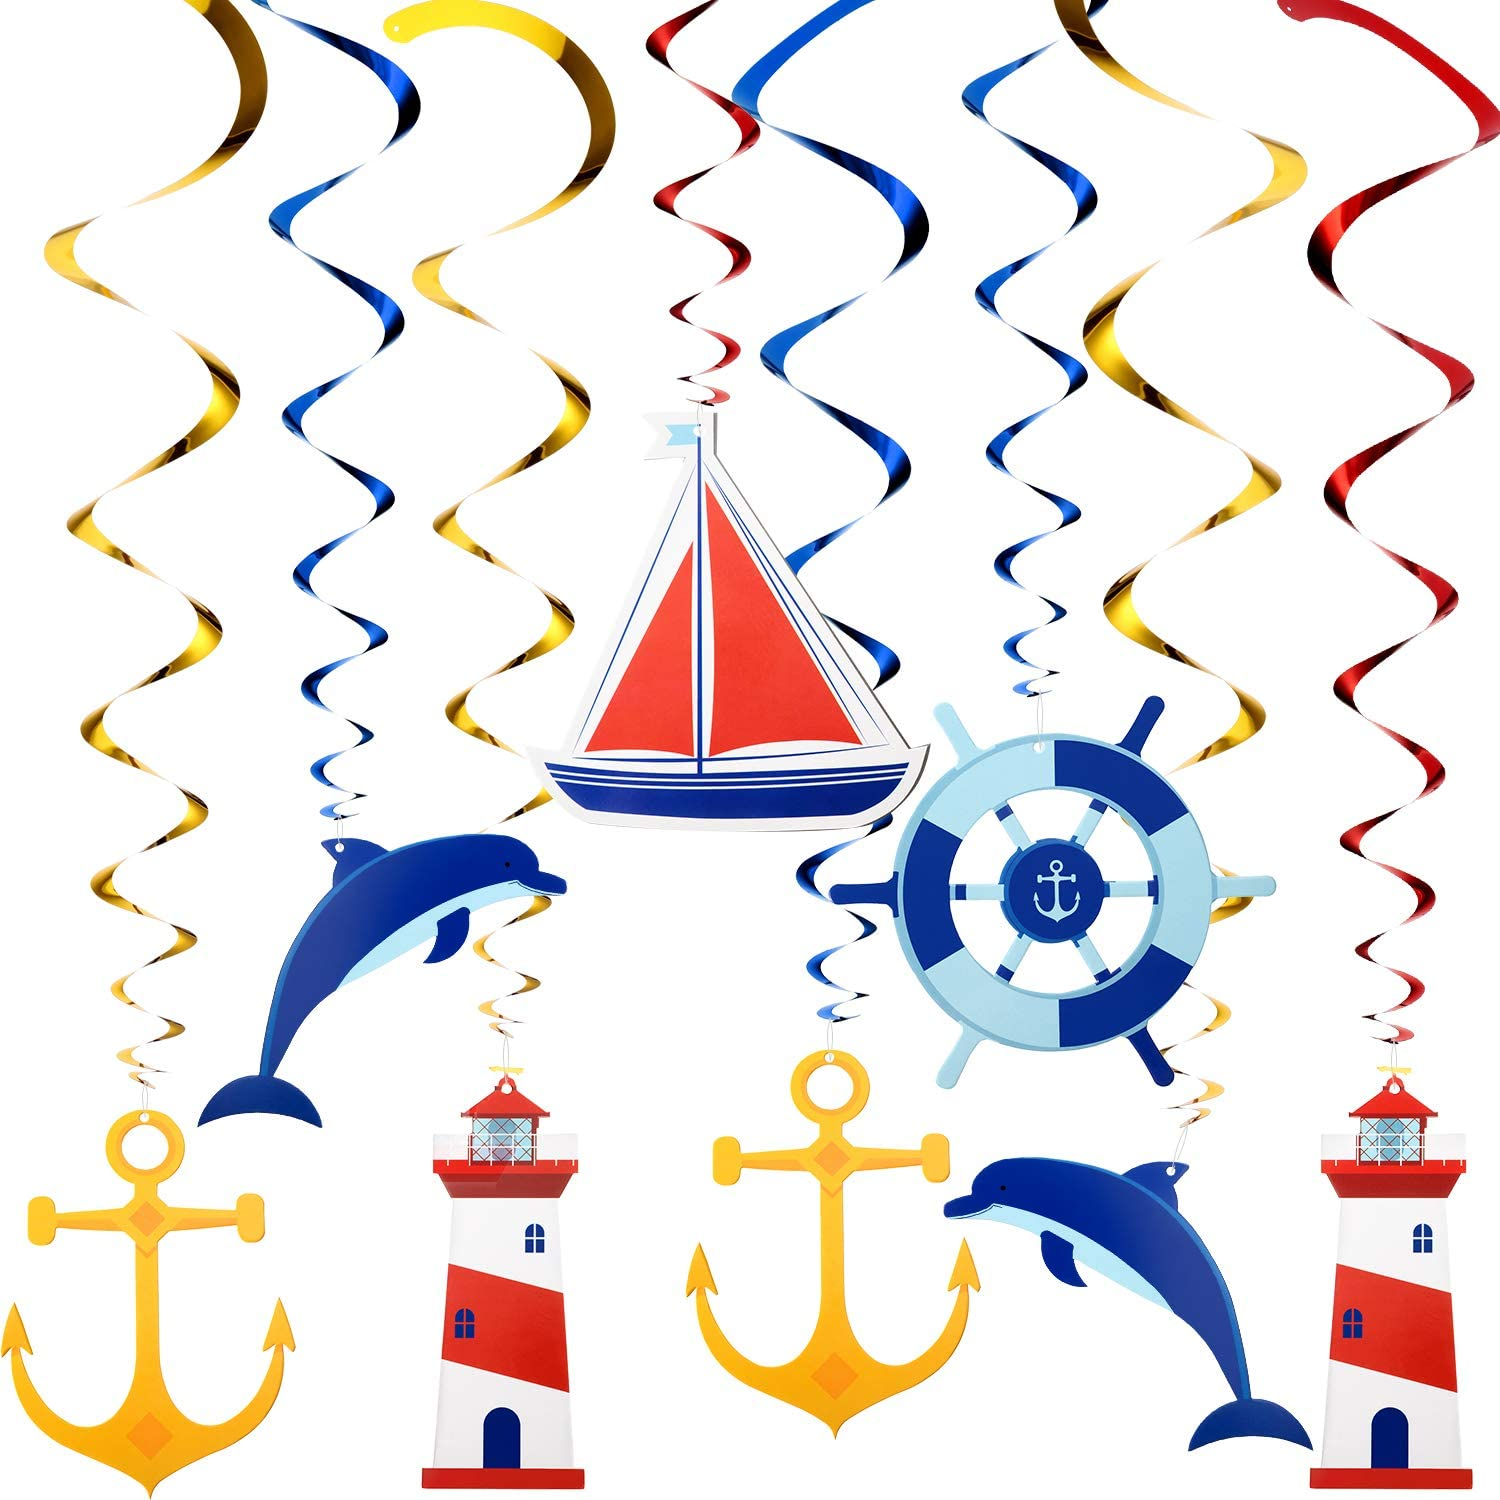 Willbond 20 Pieces Nautical Hanging Swirl Cruise Ship Anchor Hanging Nautical Sailor Theme Party Decorations for Birthday Baby Shower Bachelorette Party Supplies